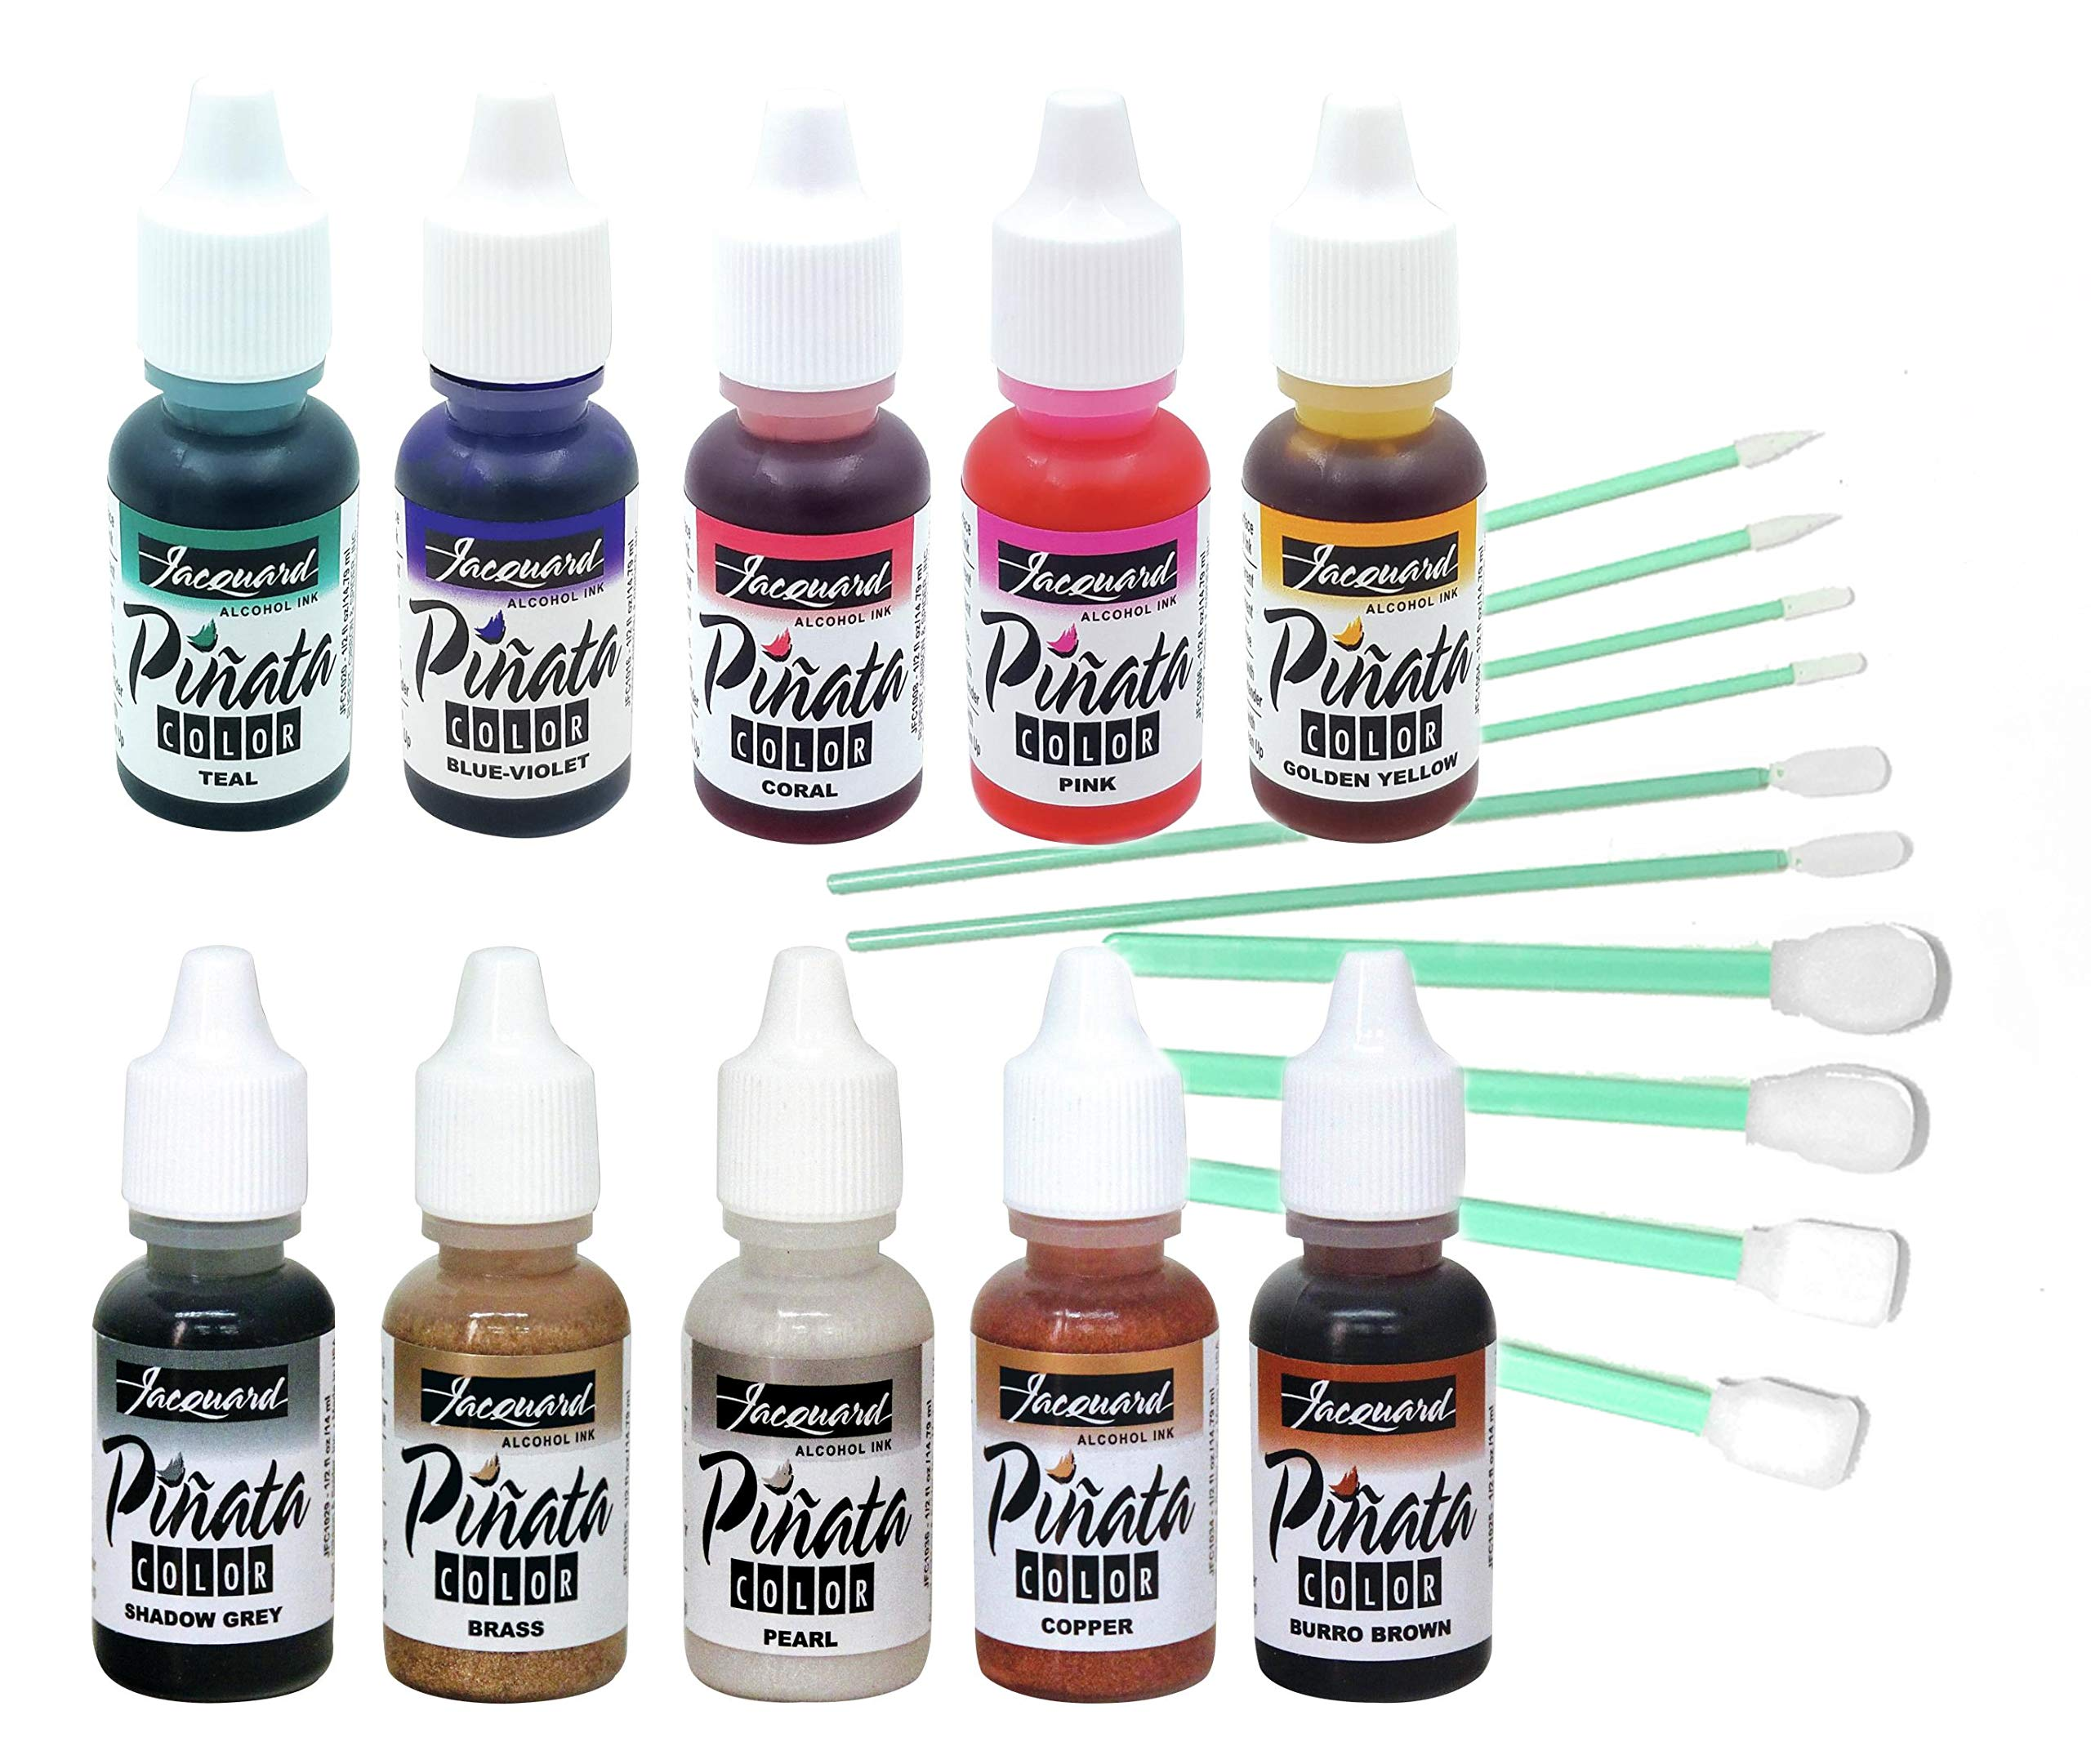 Jacquard Pinata 10 Color Bundle Alcohol Ink New 2019 Colors Golden Yellow, Pink, Coral, Blue Violet, Teal, Copper, Brass, Pearl, Shadow Grey, Burro Brown, with 10X Pixiss Blending Tools by GRAS Art Bundles